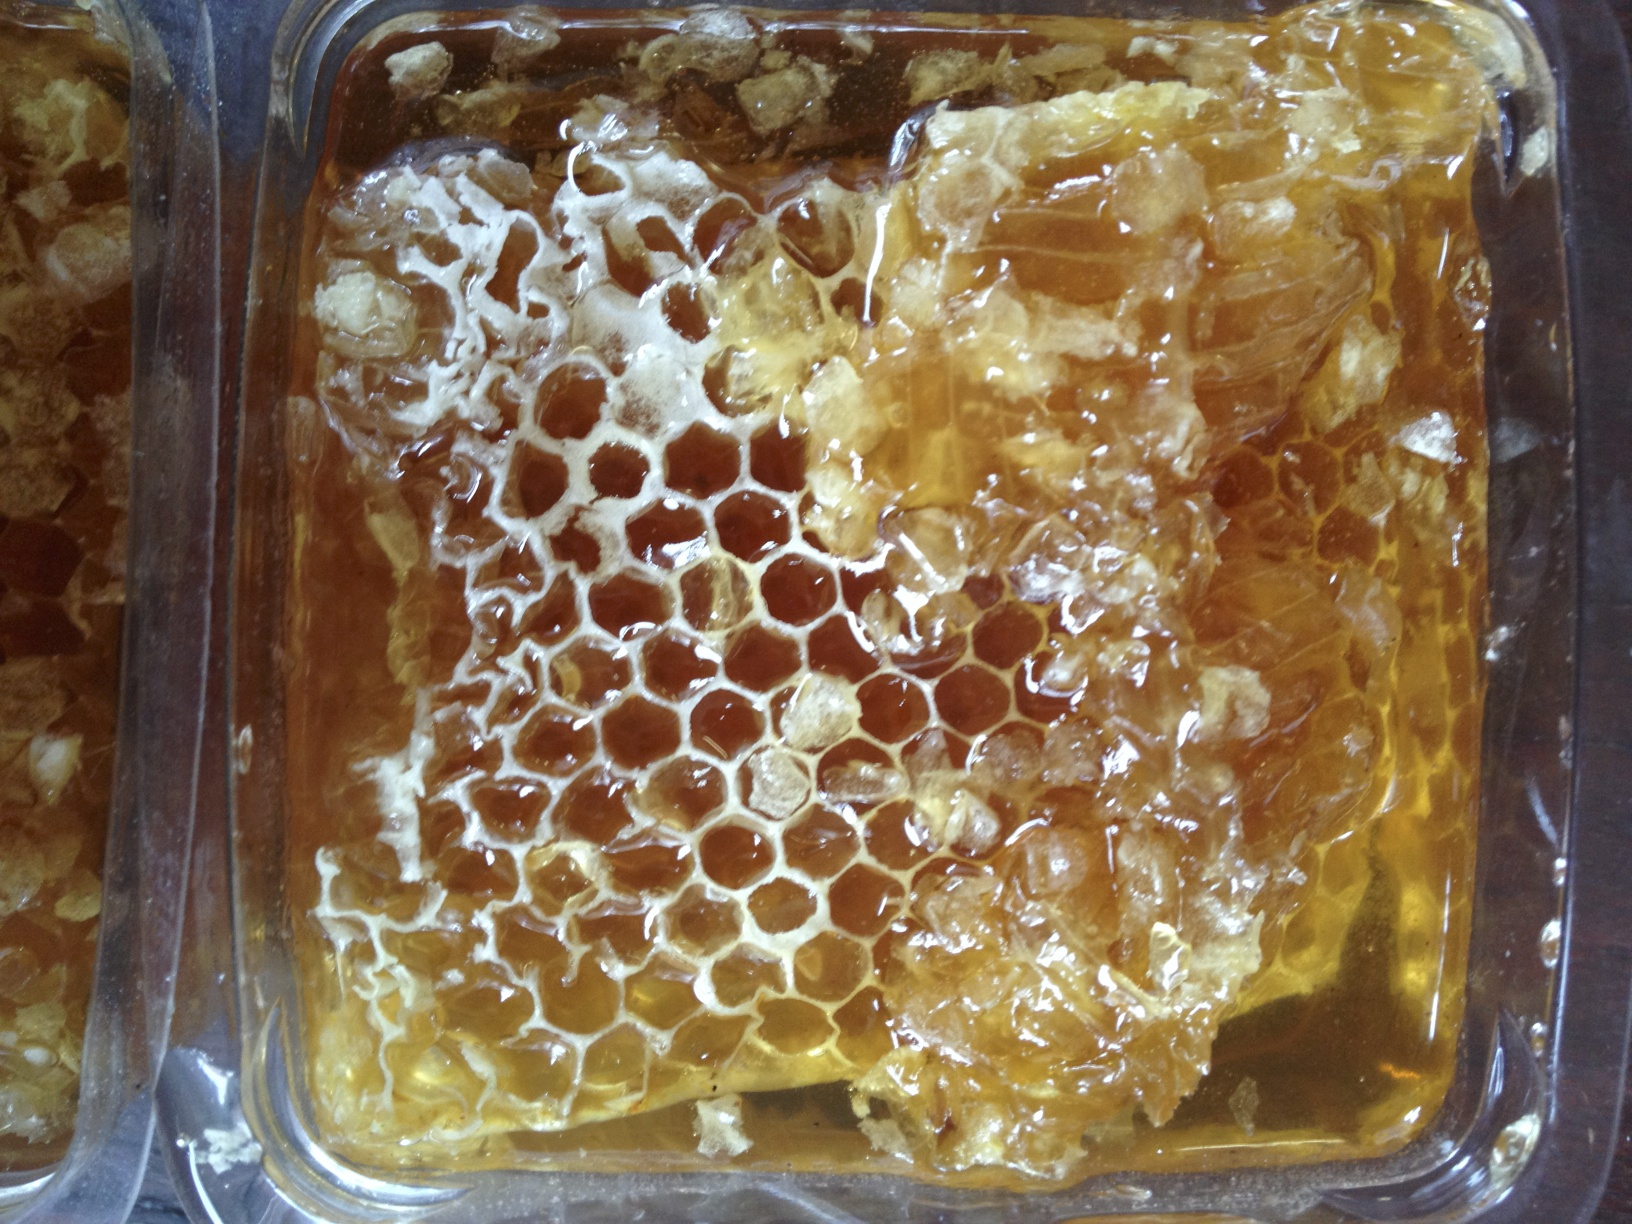 Honeycomb Food Production